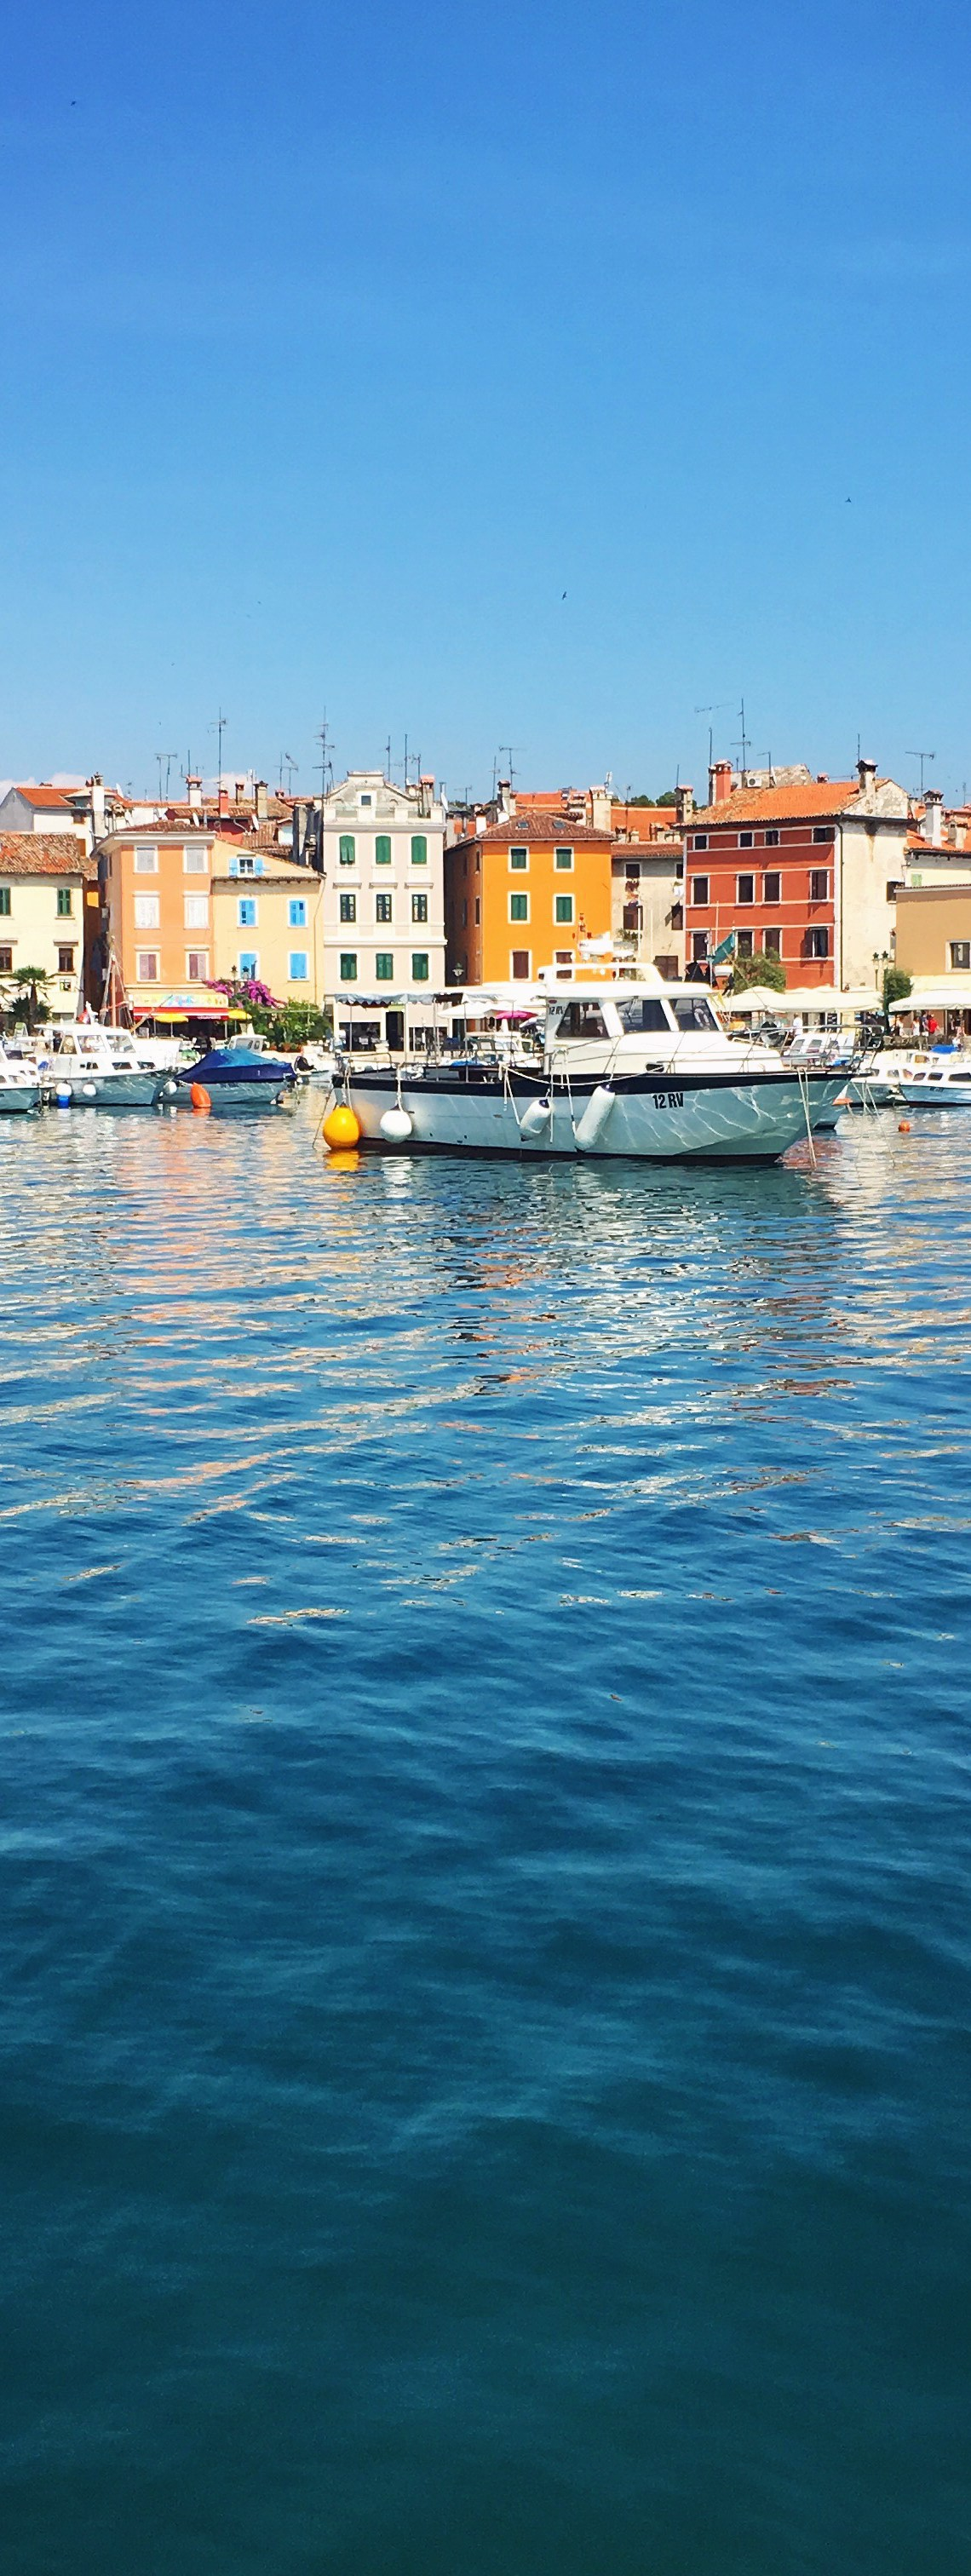 Rovinj Is An Absolute Gem: Don't Go There | Croatia | The Travel Medley